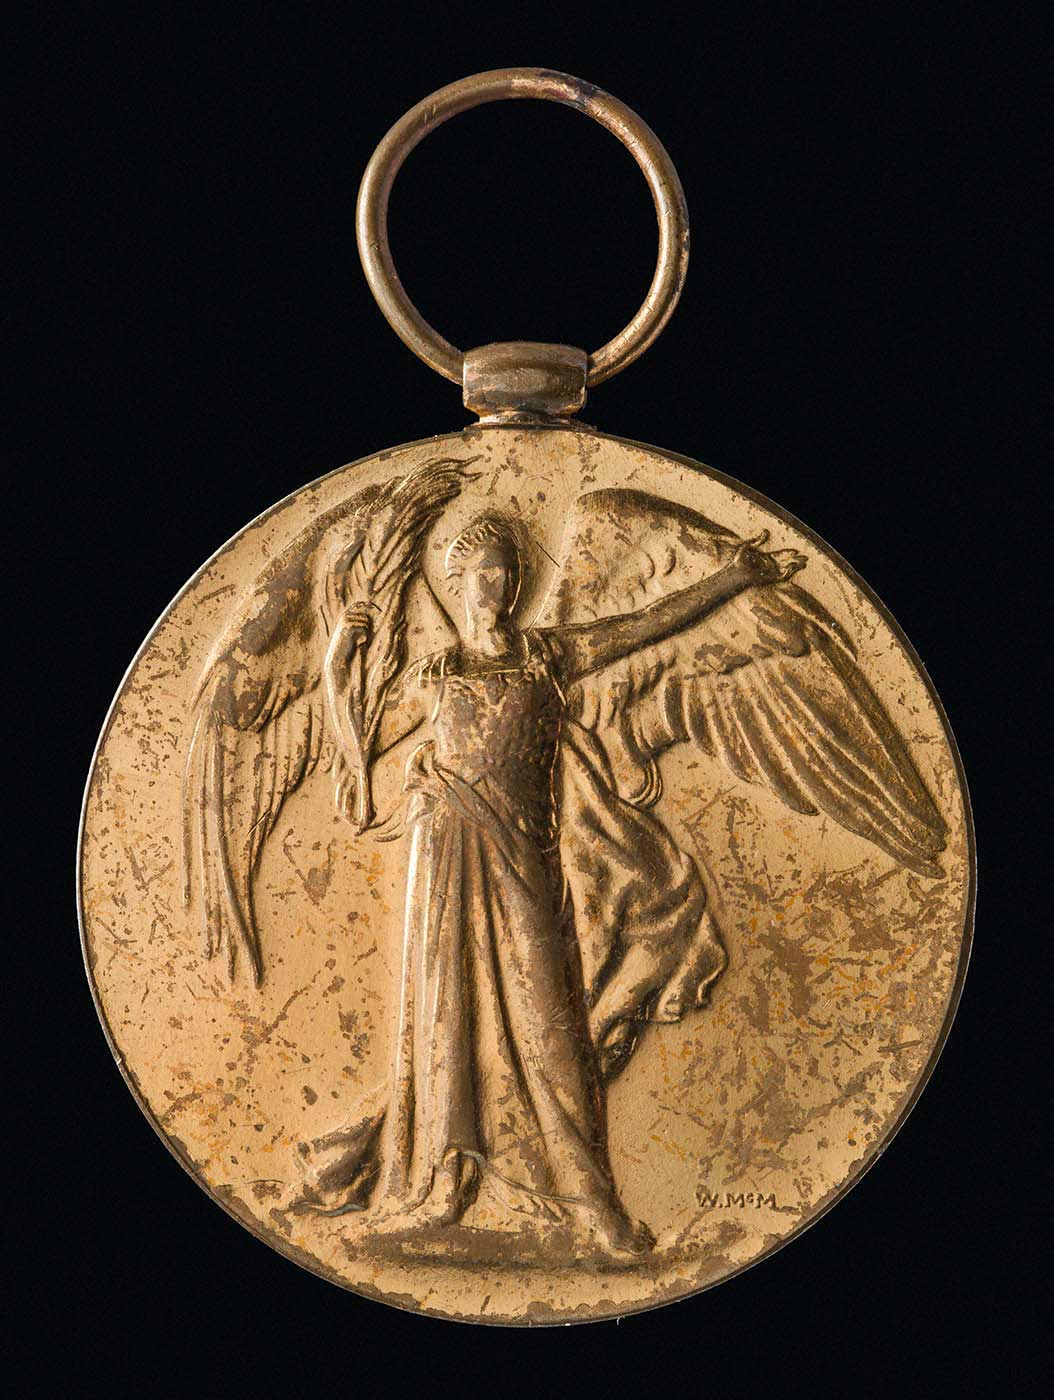 Gold medal embossed with an angel. - click to view larger image